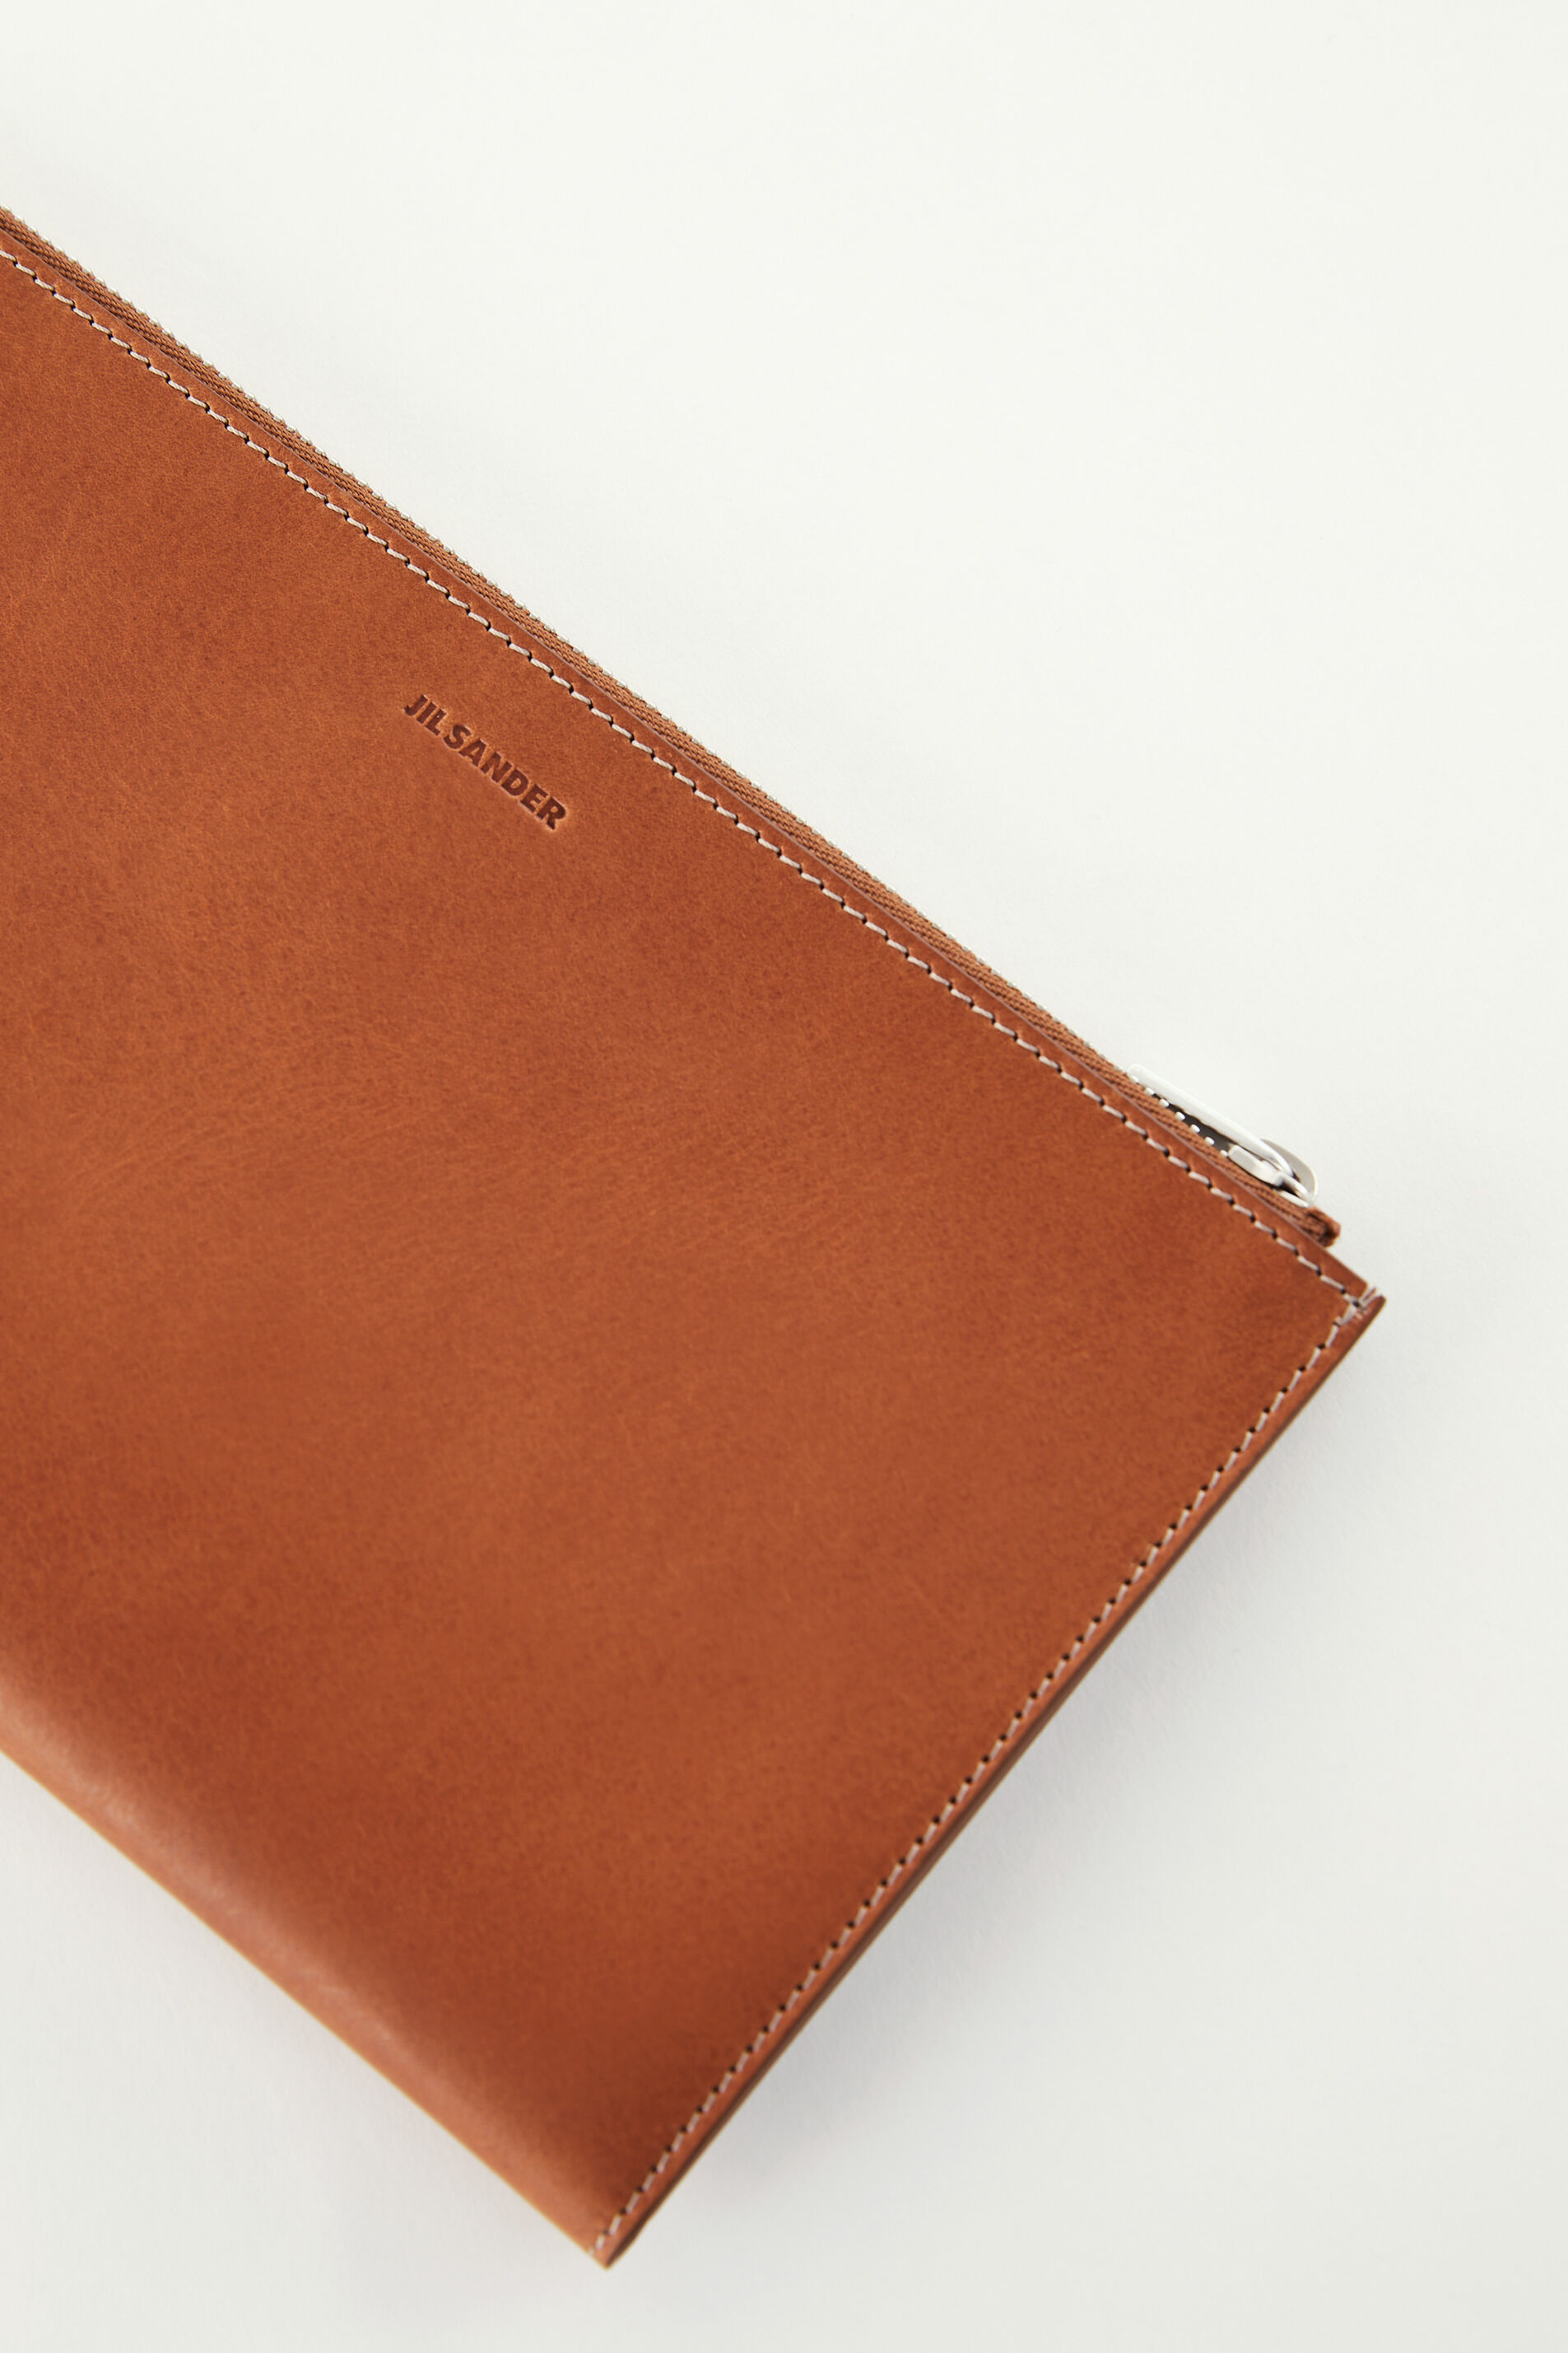 Zip Document Holder, brown, large